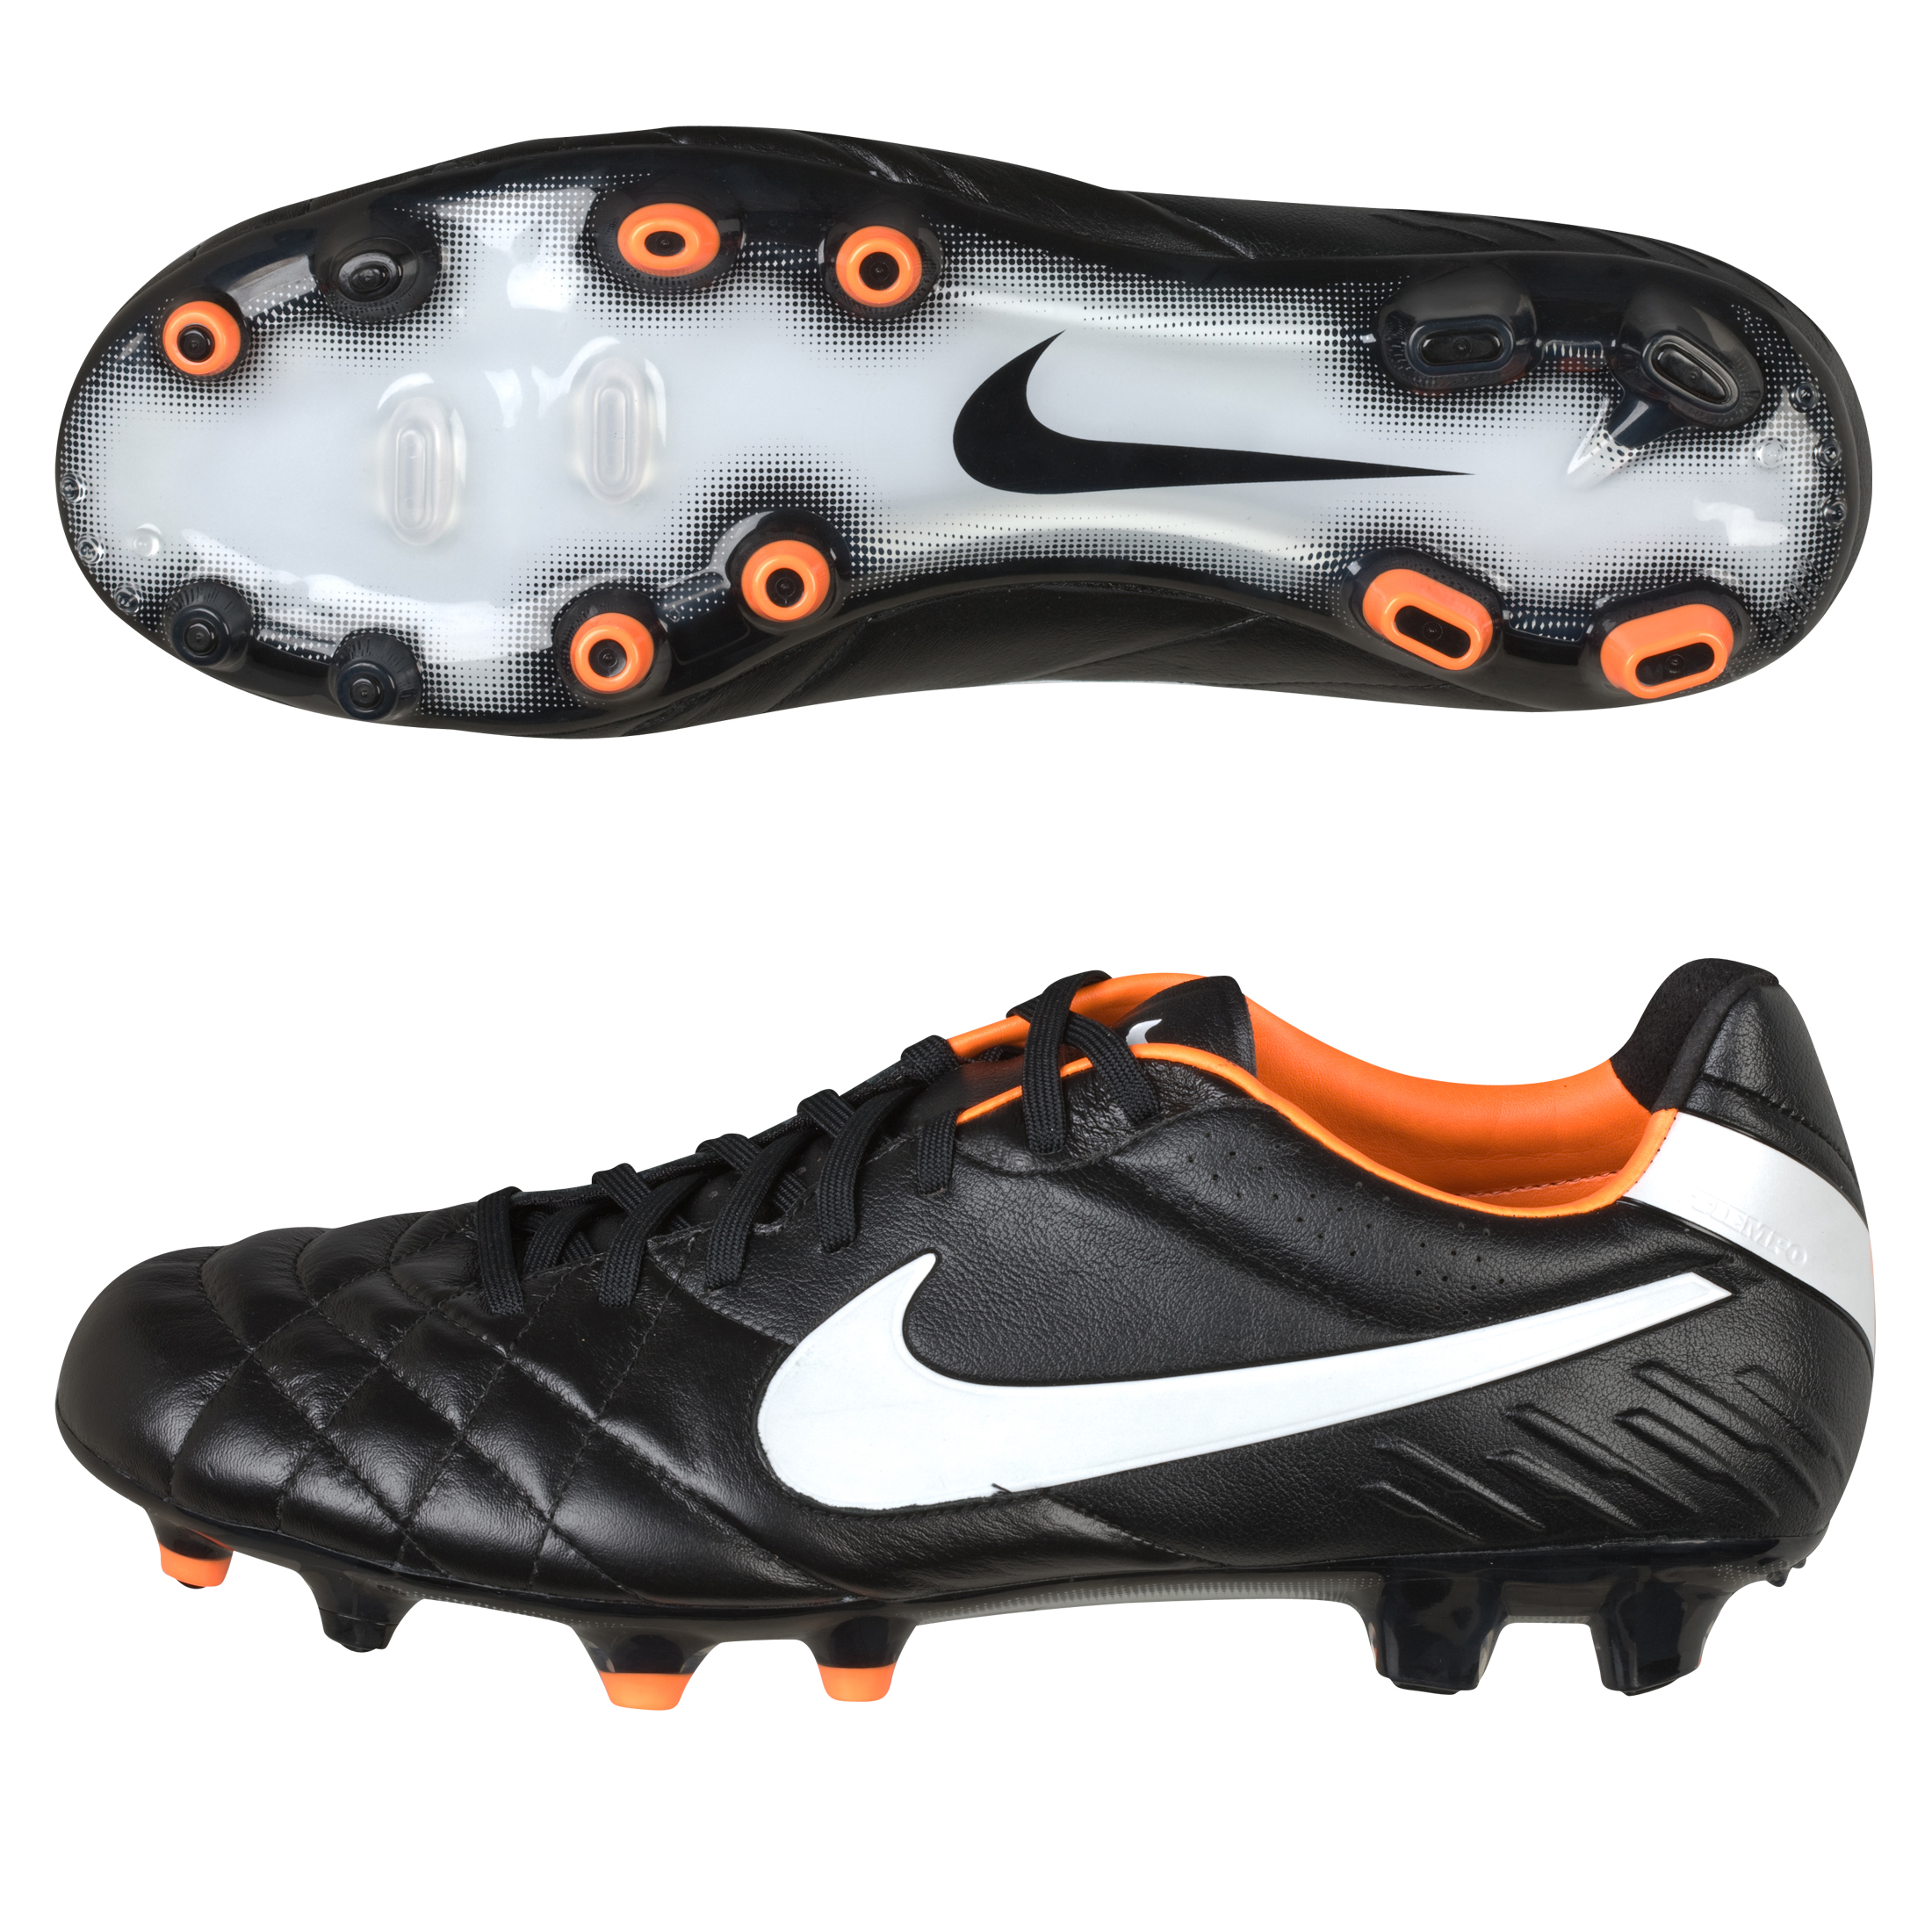 Nike Tiempo Legend IV Firm Ground Football Boots - Black/White/Total Orange